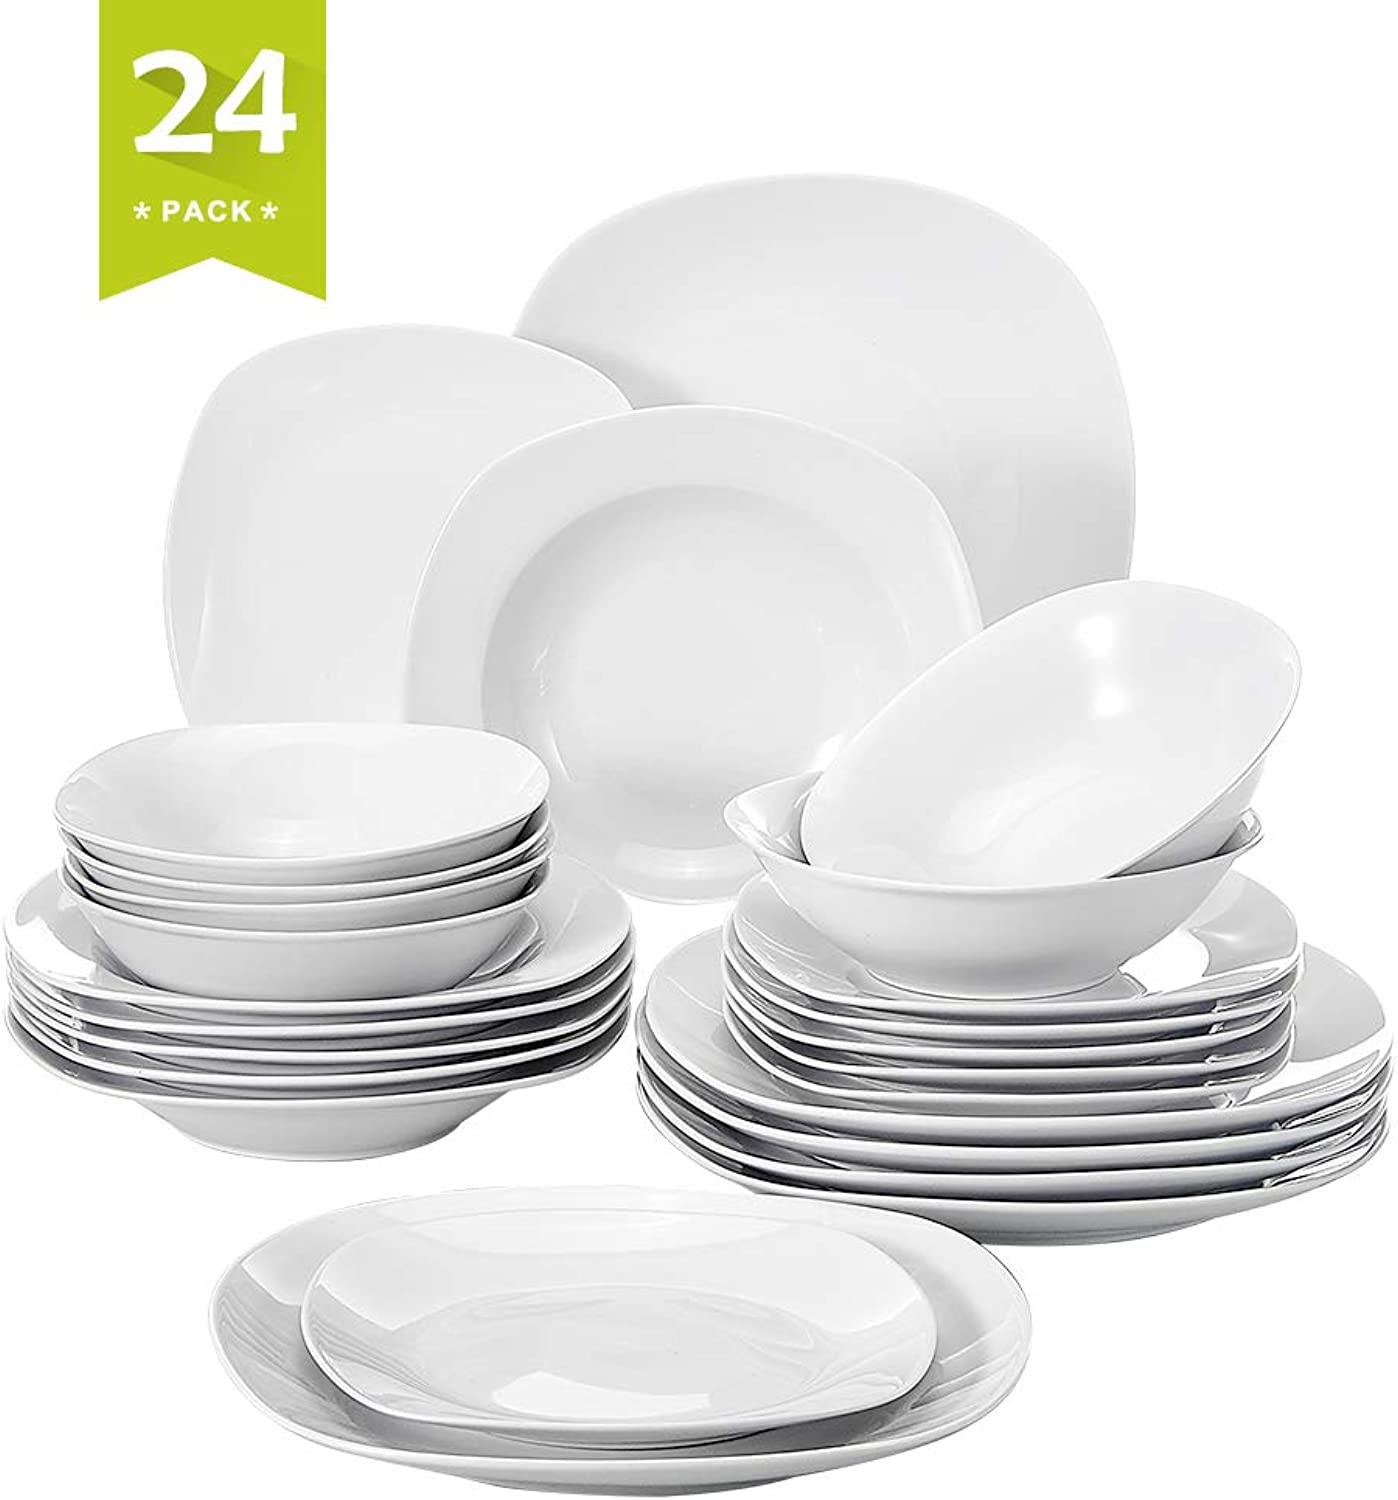 Malacasa, Series Elisa, 24-Piece Ivory White Porcelain Dinnerware Sets of 9.75  Dinner Plate, 8.5  Soup Plate, 7.5  Dessert Plates and 6.7  Bowl Set Service for 6